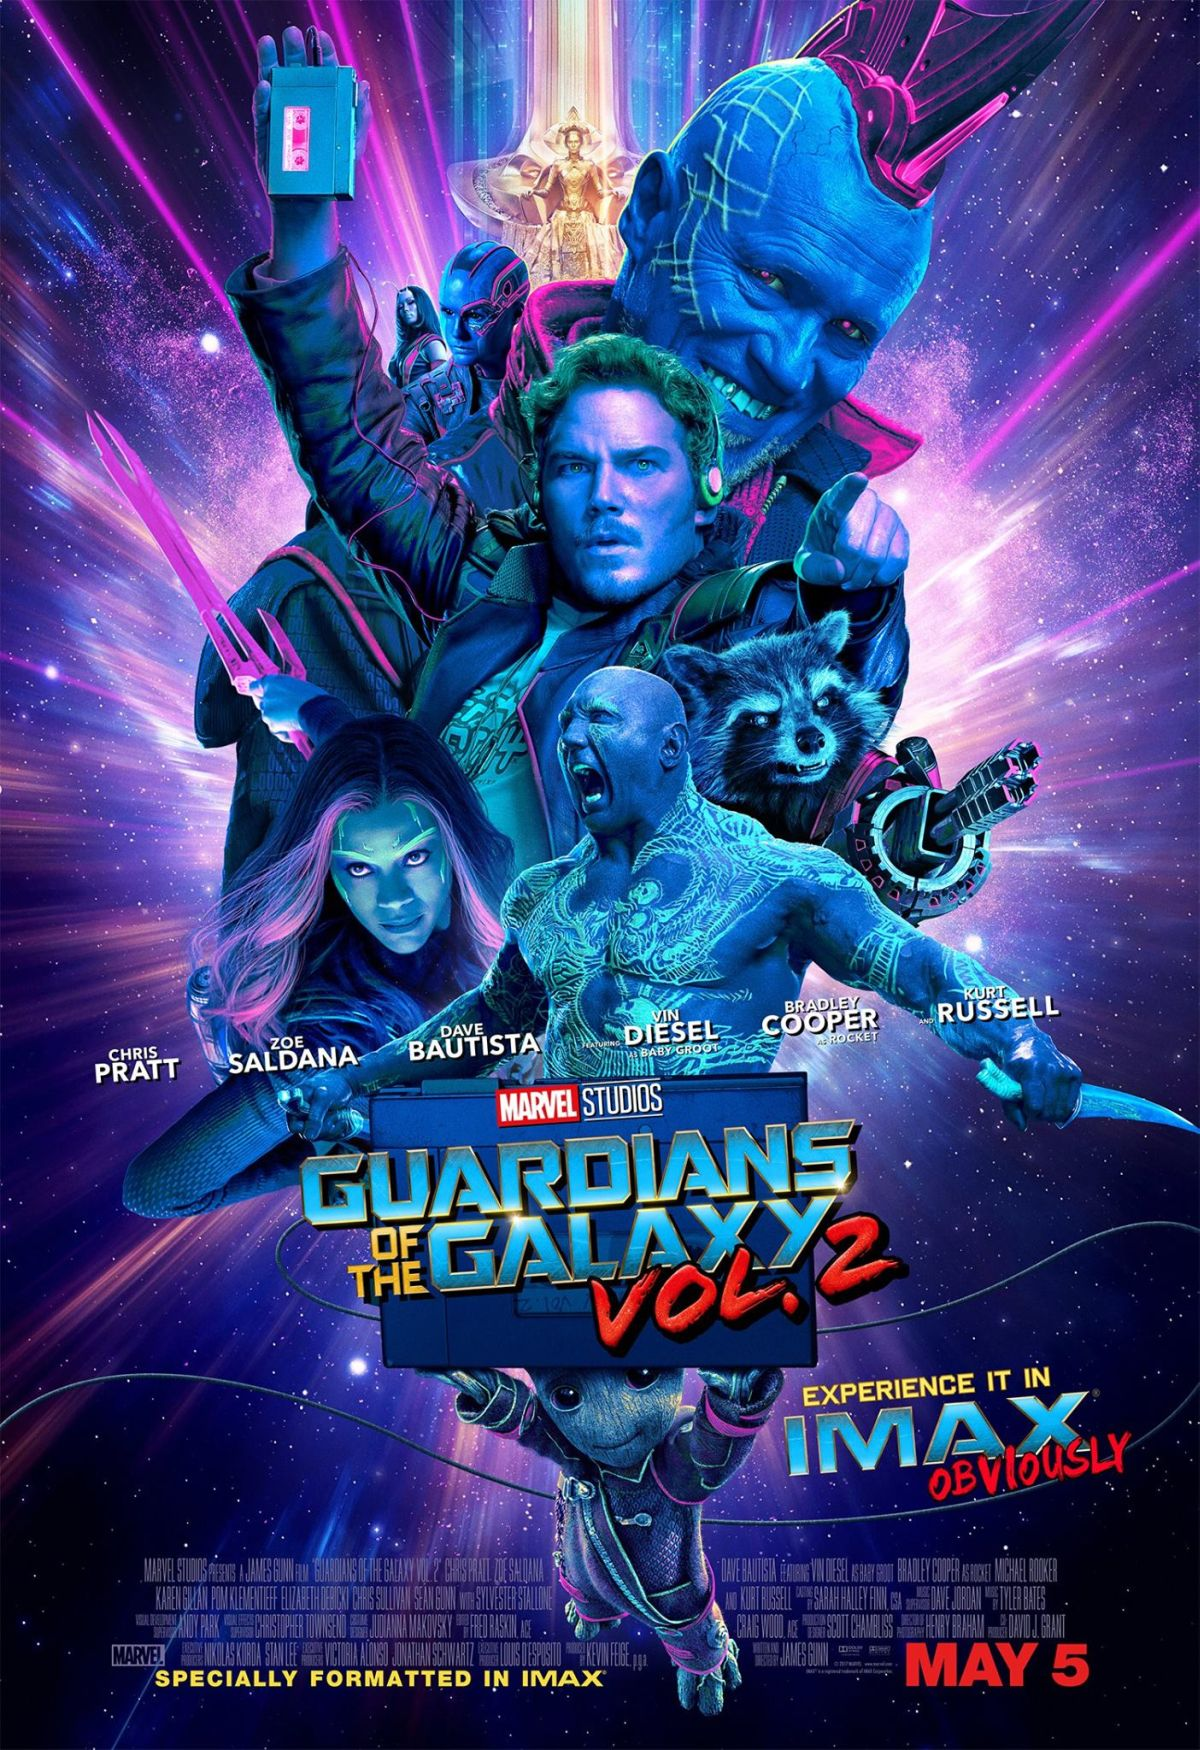 'Guardians Of The Galaxy Vol. 2' IMAX Poster